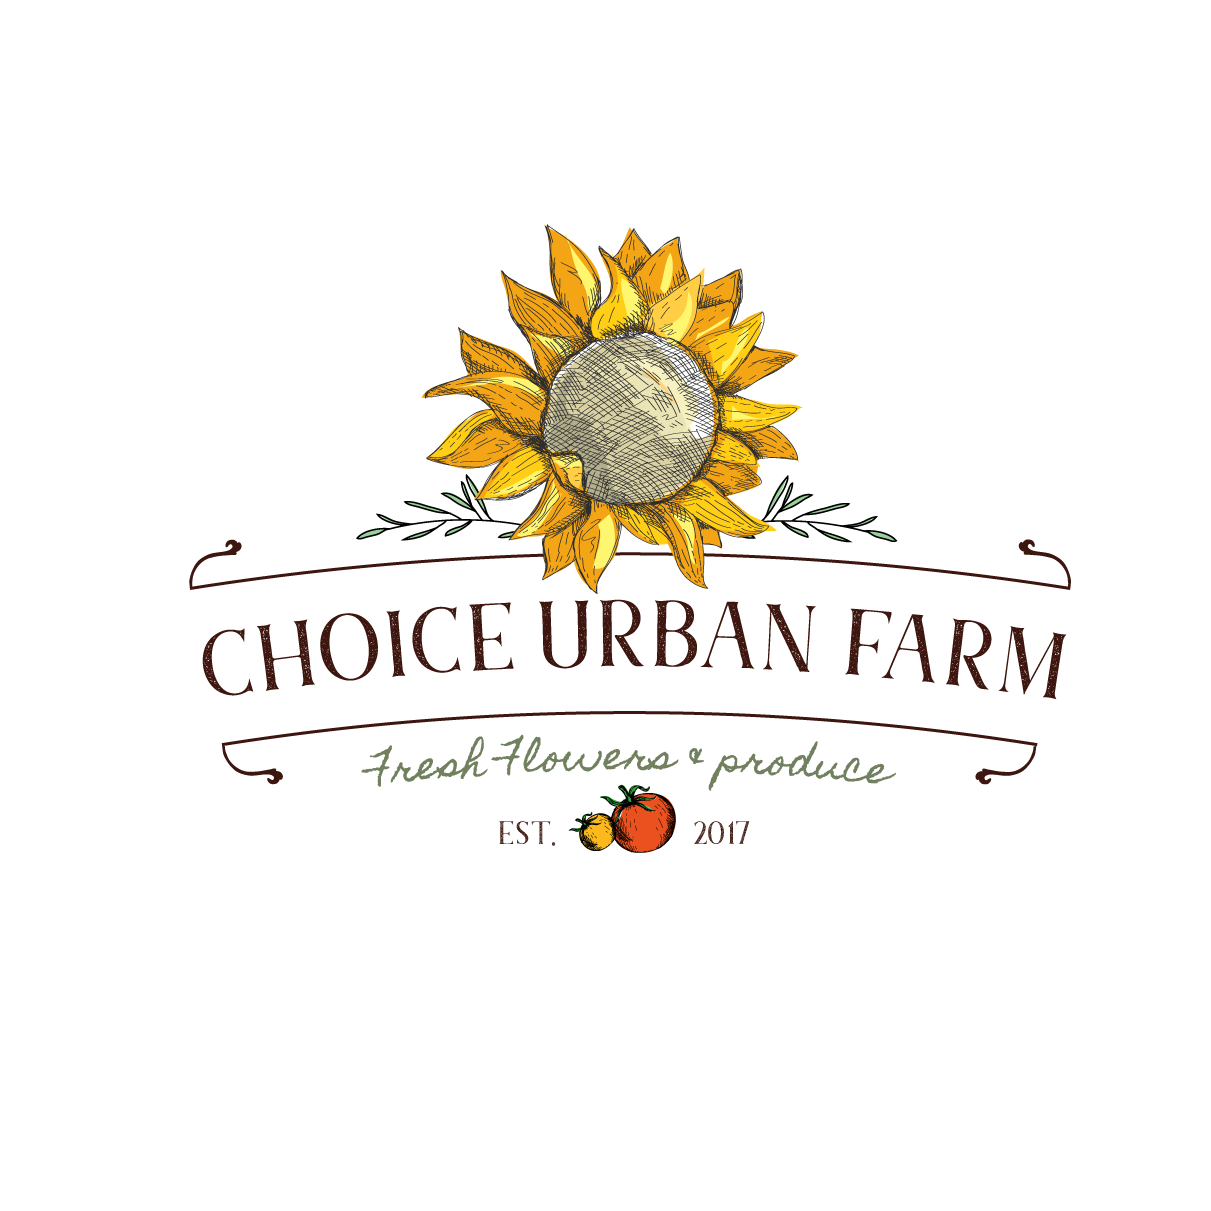 Choice Urban Farm